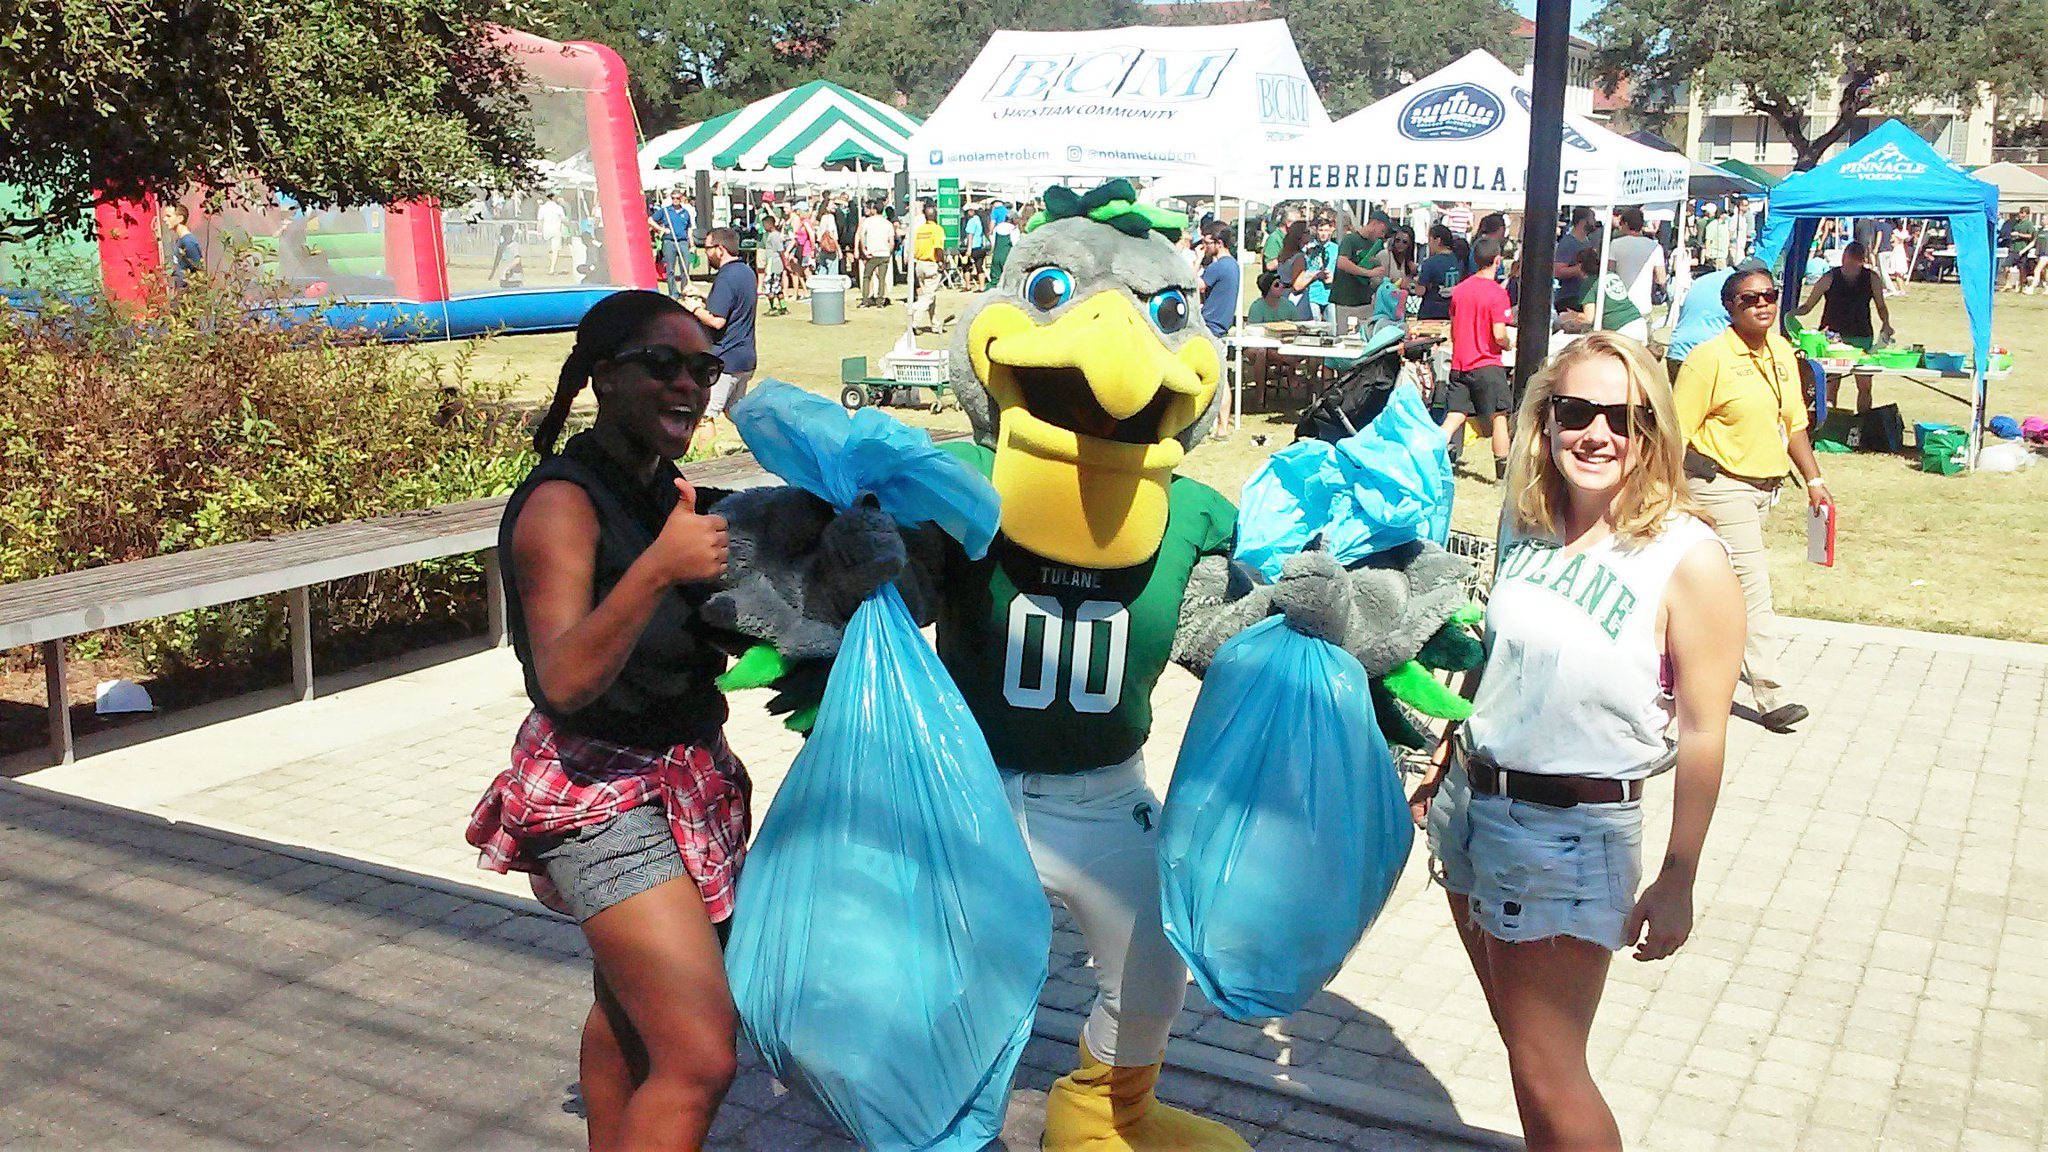 Riptide loves to #recycle, do you? @TulaneUBand show us how you are reducing your waste this Mardi Gras! #tulanerecycles  @RecycleManiacs https://t.co/uWwDgSJV5m